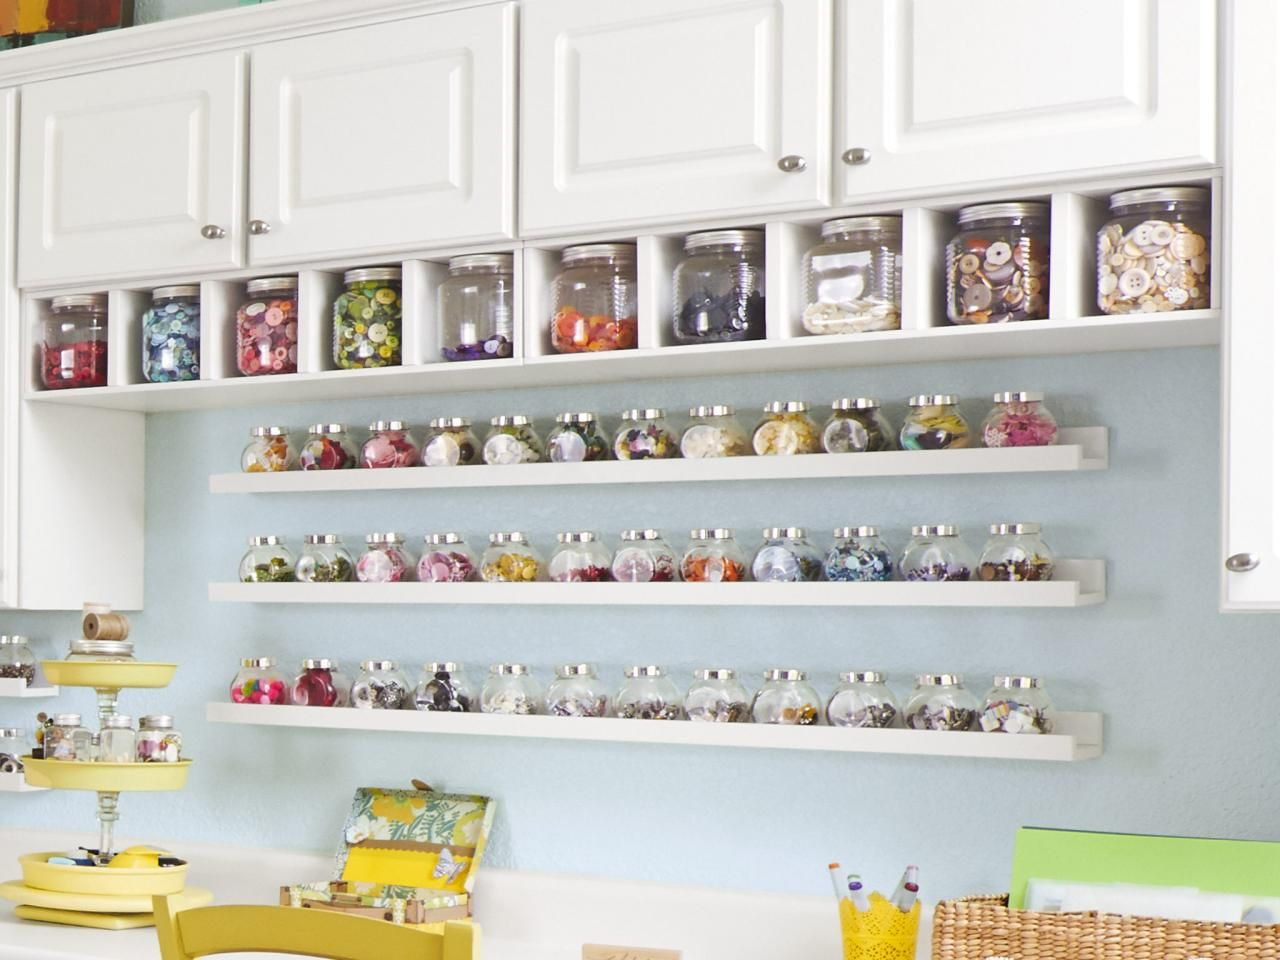 Craft room organization ideas - Craft And Sewing Room Storage And Organization